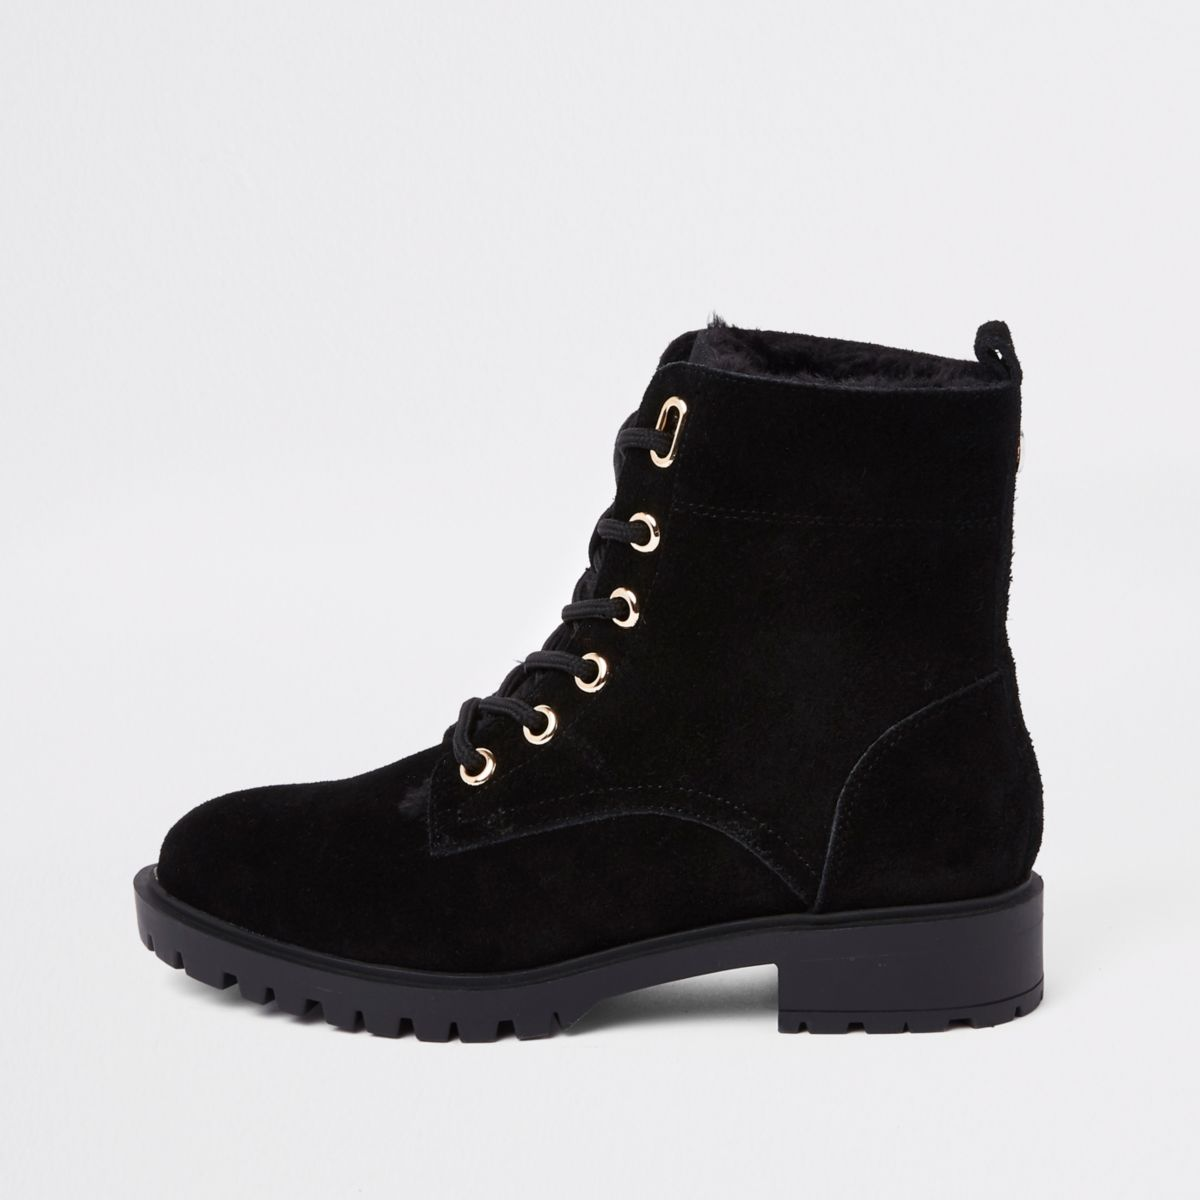 Black faux fur lined lace-up ankle boots